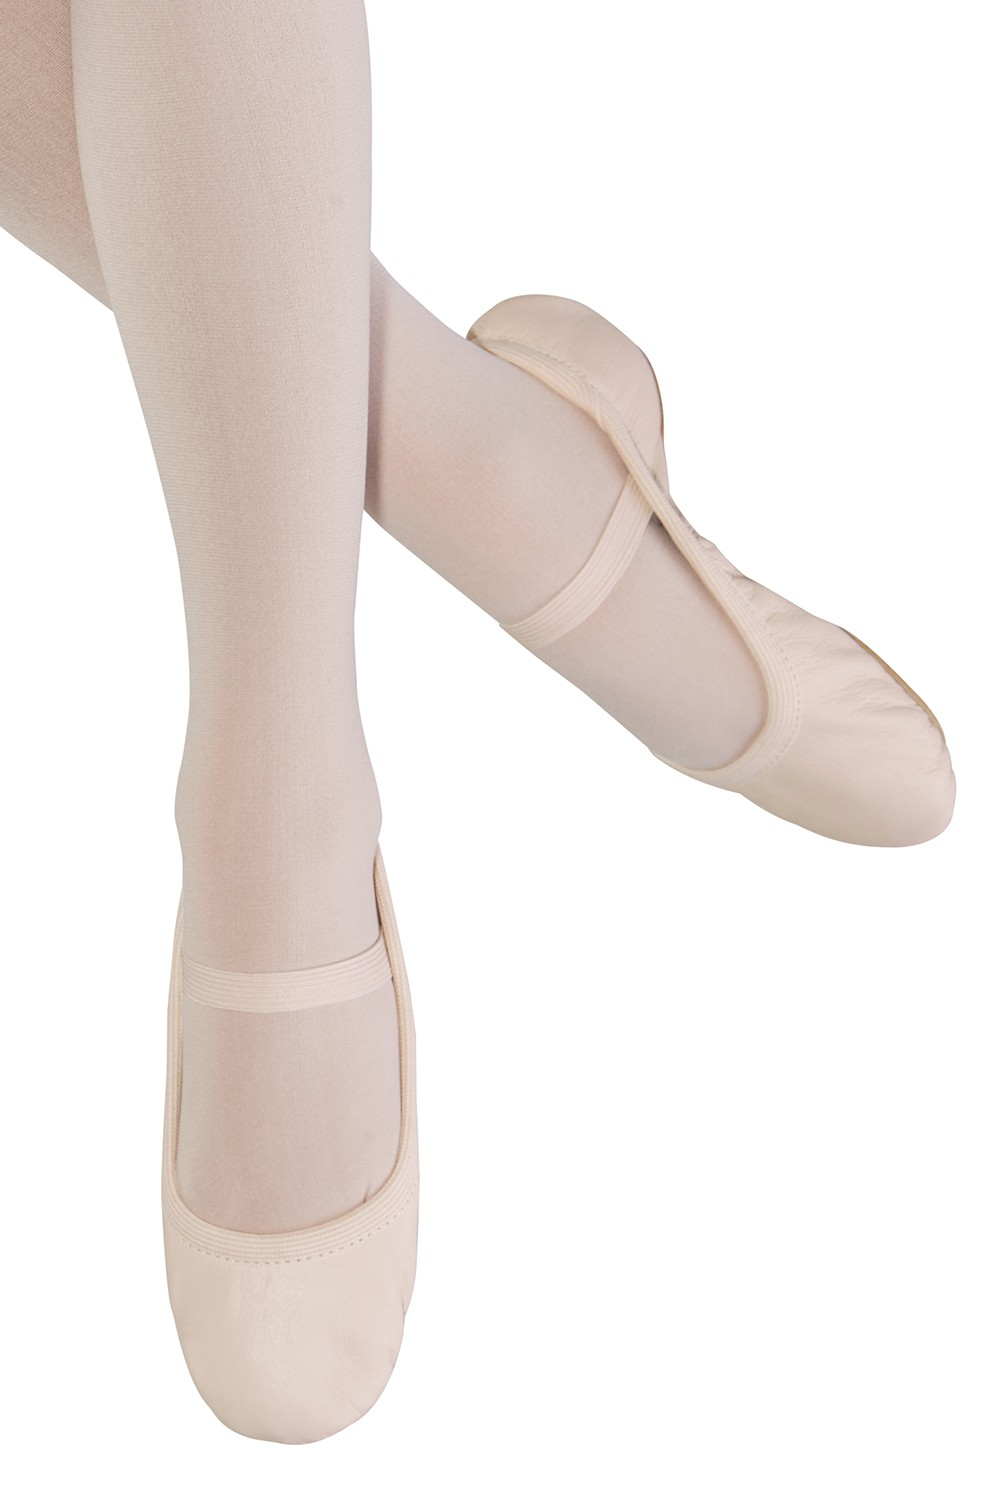 Giselle - Fille Girl's Ballet Shoes